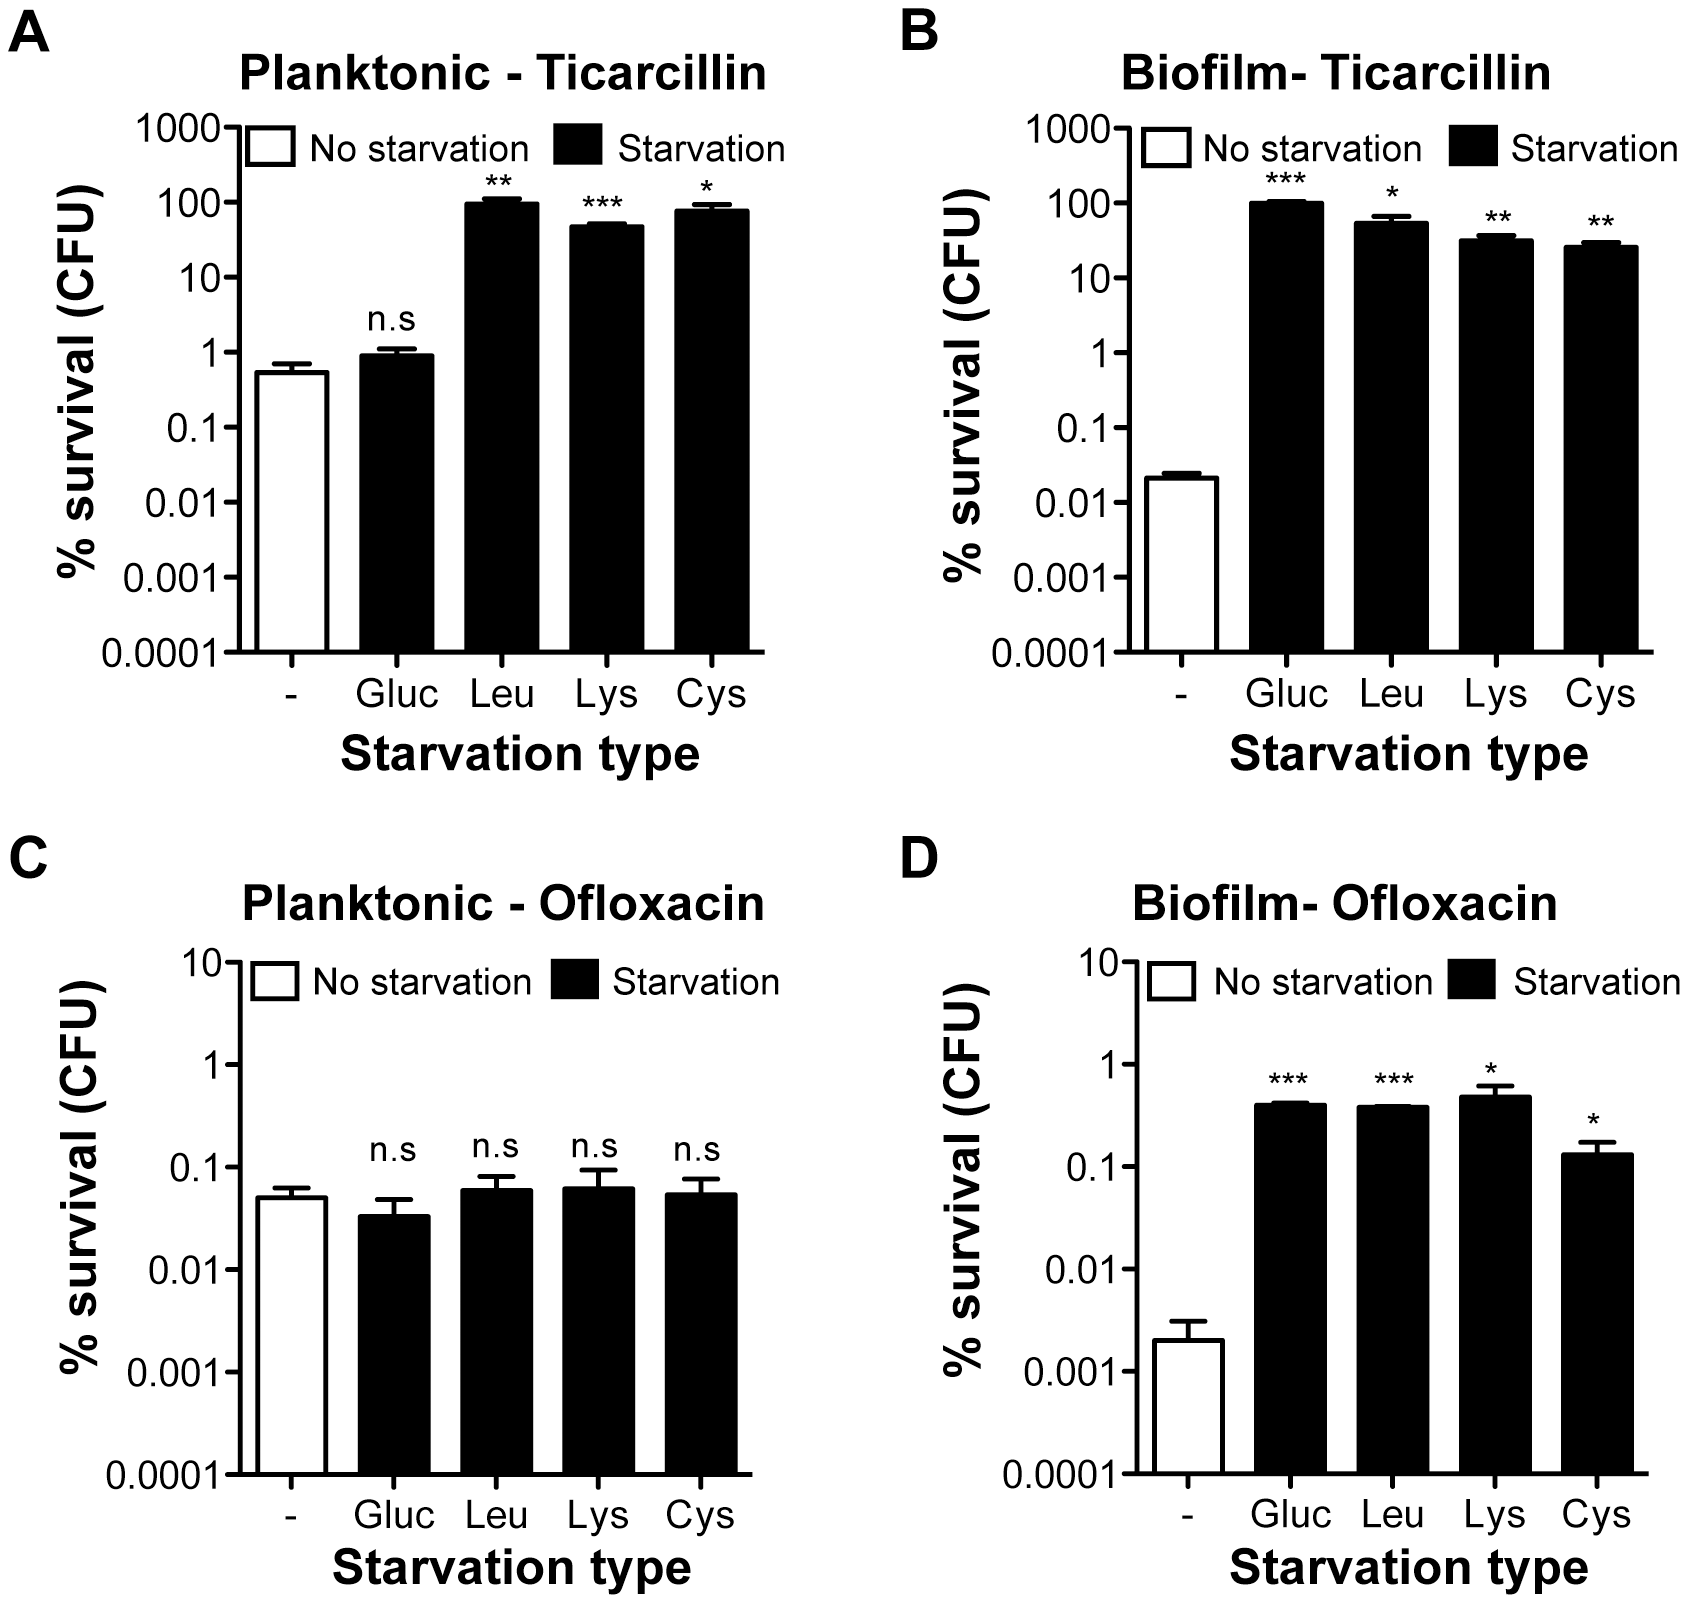 Antibiotic tolerance profile of starved planktonic and biofilm bacteria.